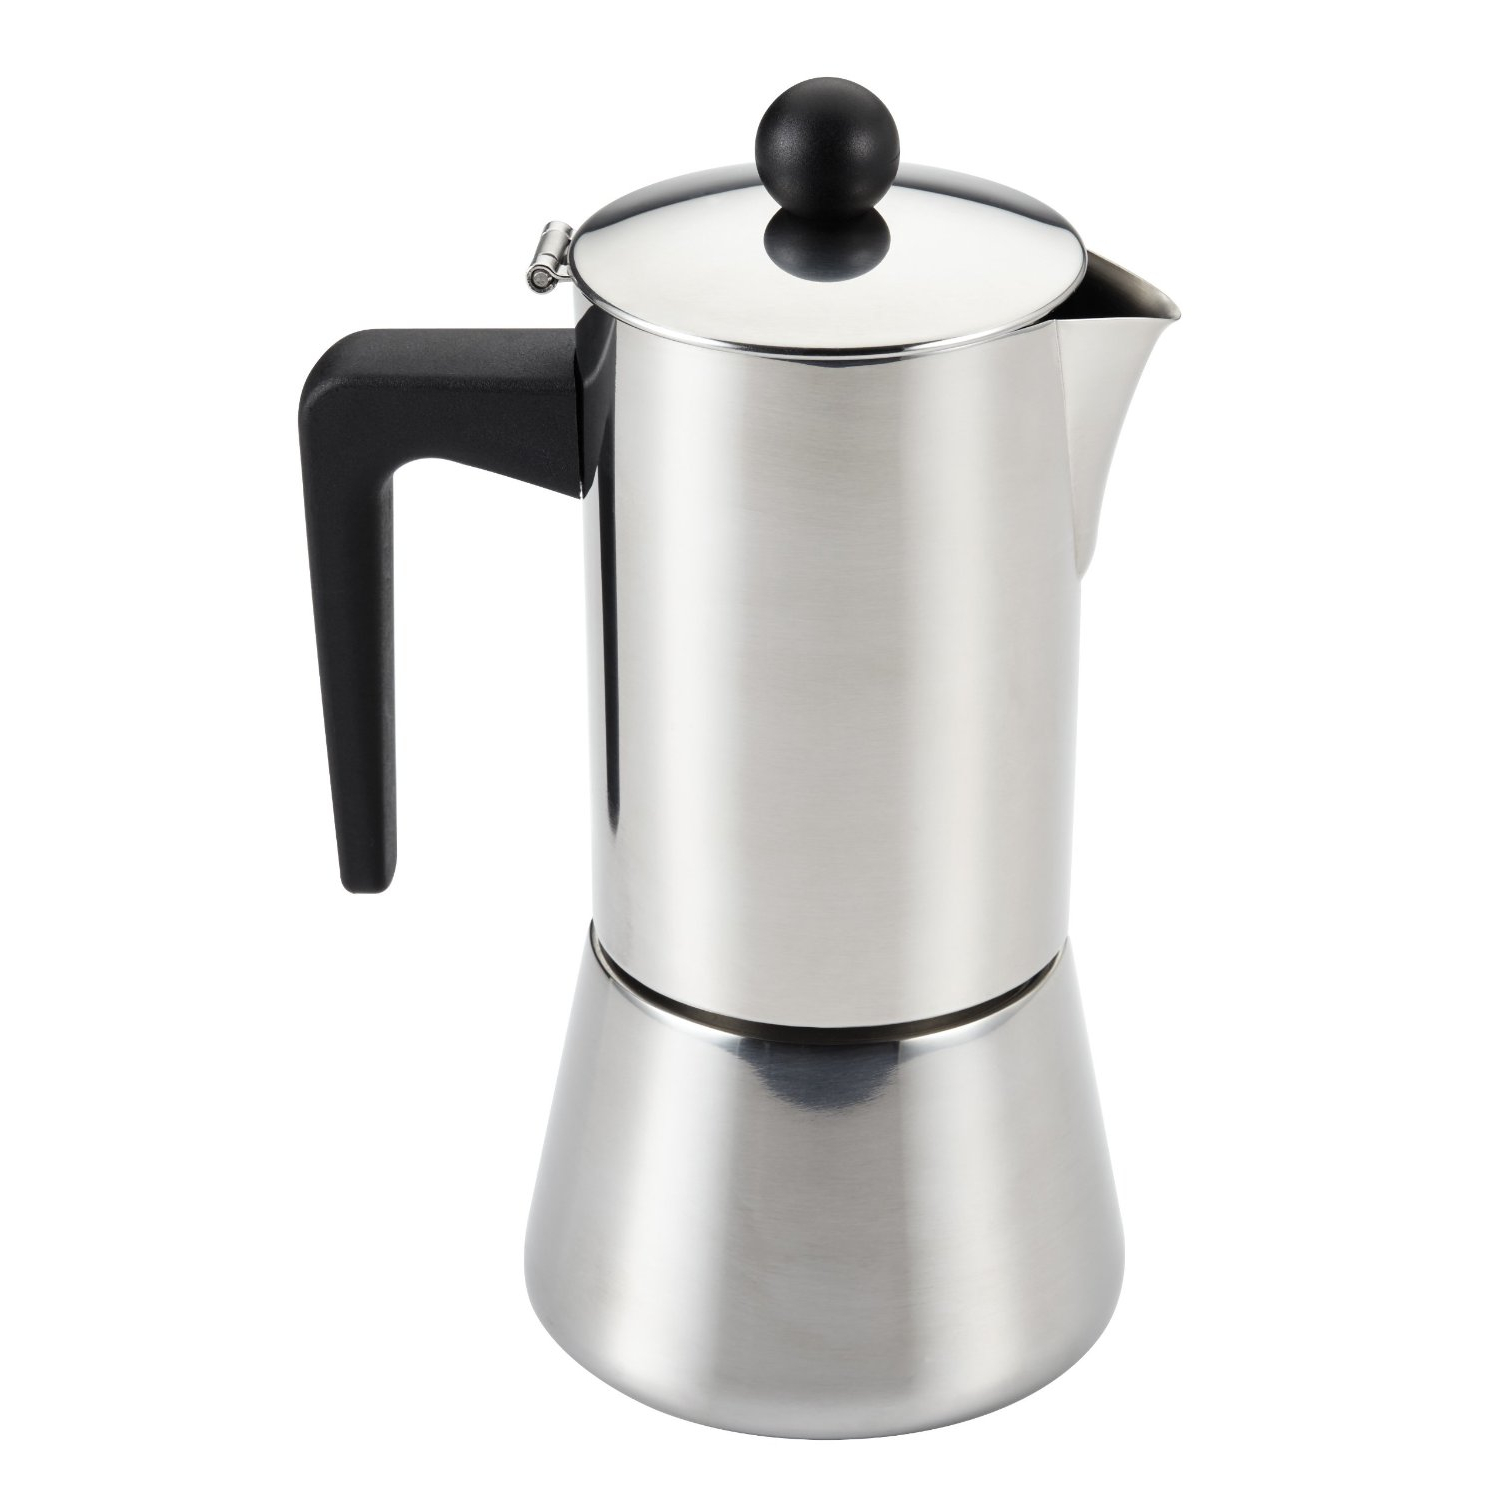 Bonjour Stainless Steel 6 Cup Stovetop Espresso Maker